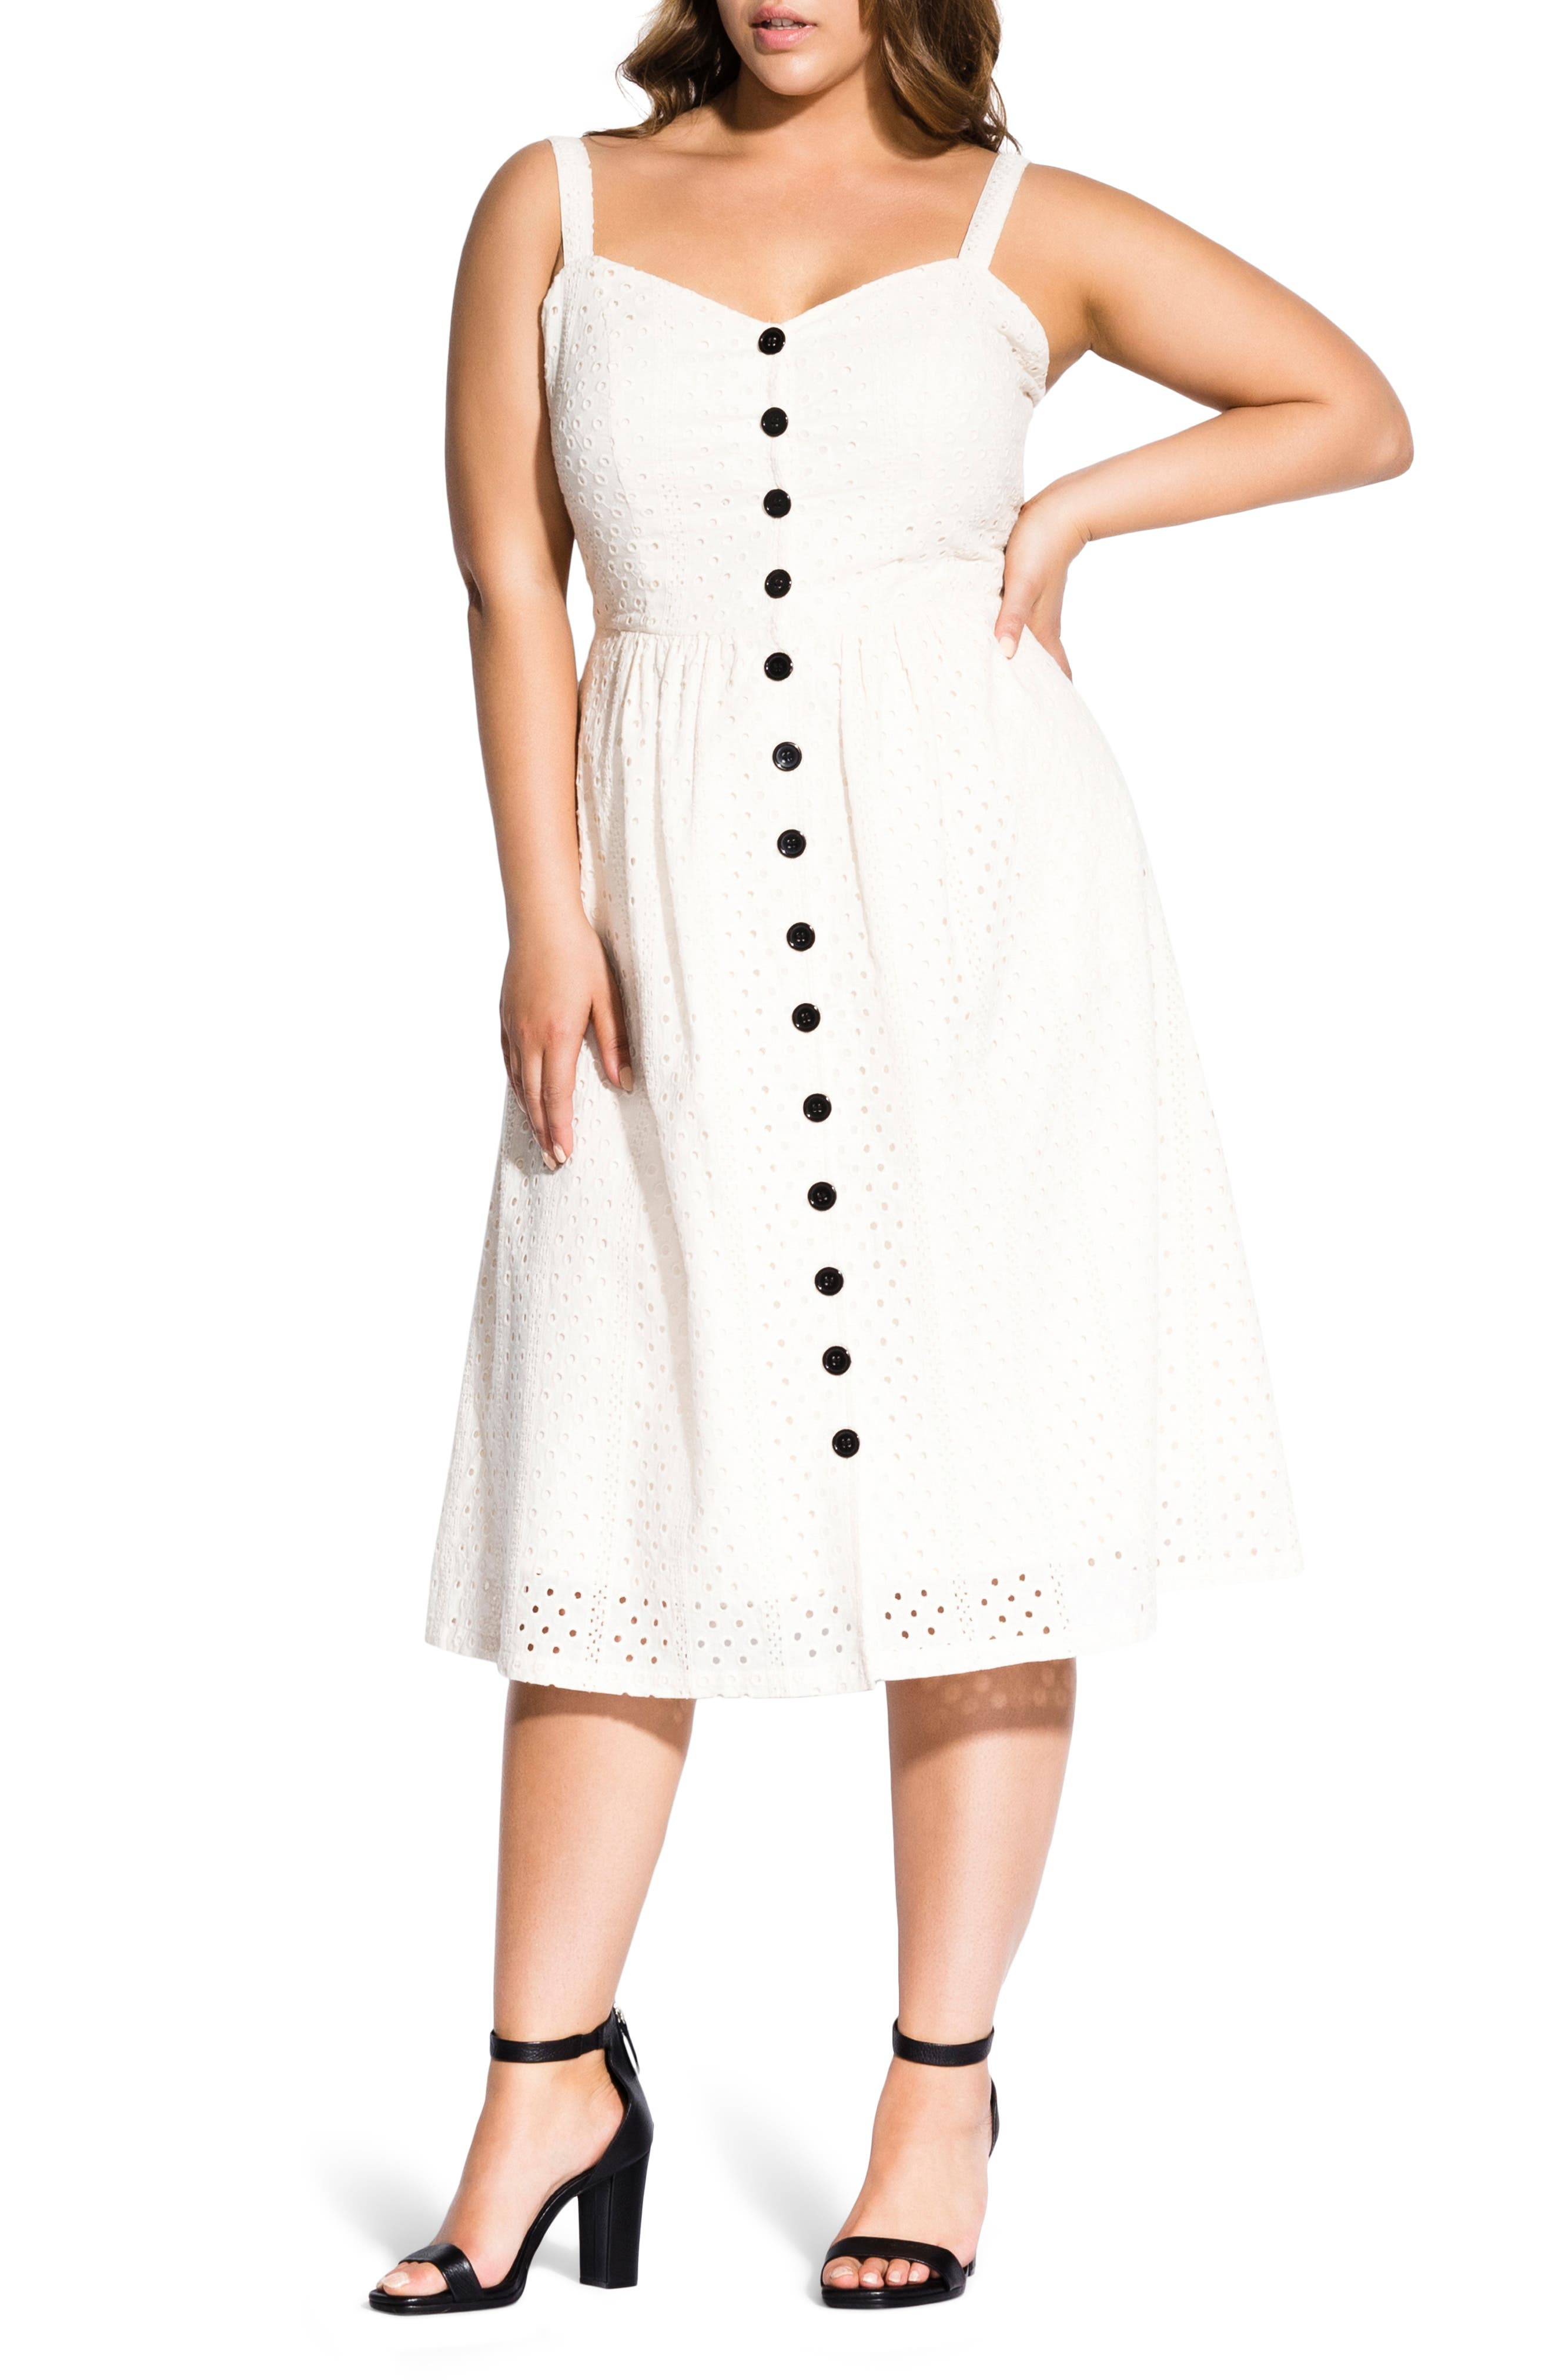 1950s Fashion History: Women's Clothing Plus Size Womens City Chic Eyelet Love Dress $119.00 AT vintagedancer.com